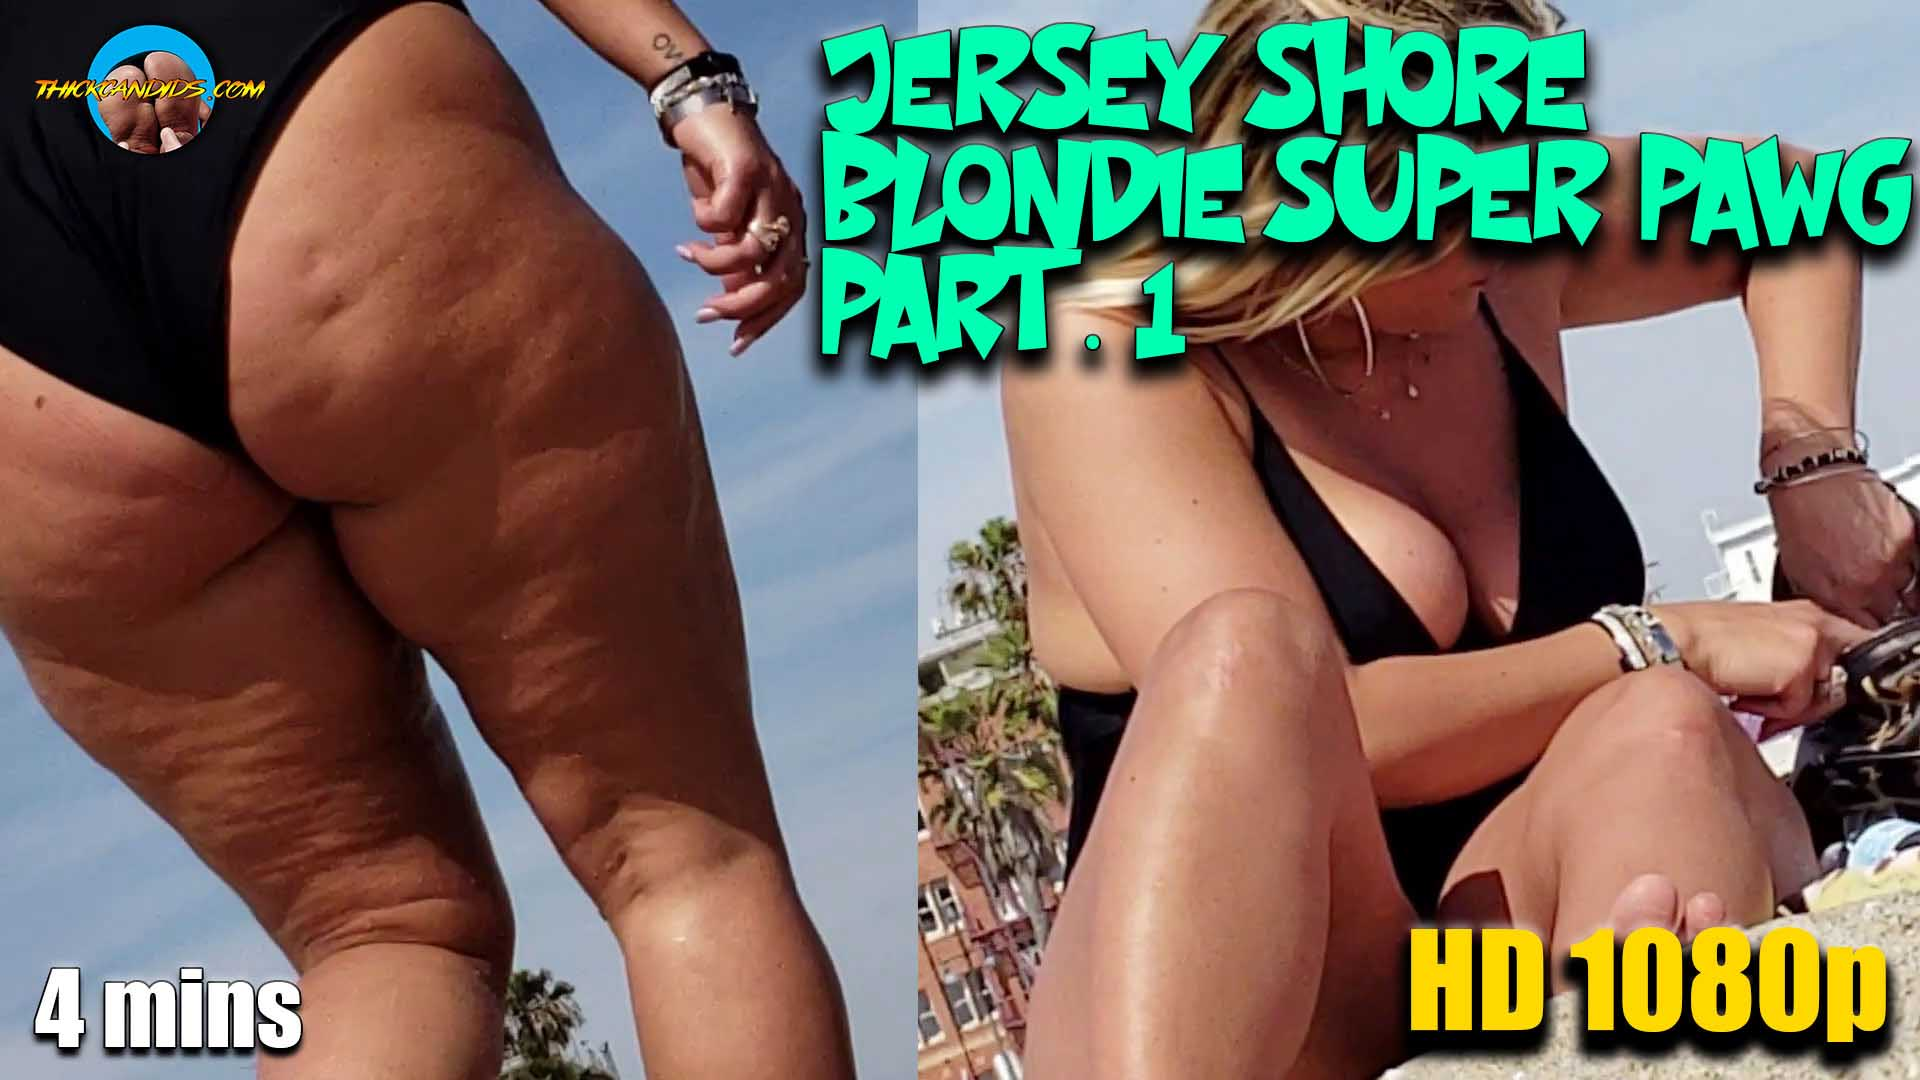 JERSEY-SHORE-BLONDIE-SUPER-PAWG!!-PART.-1